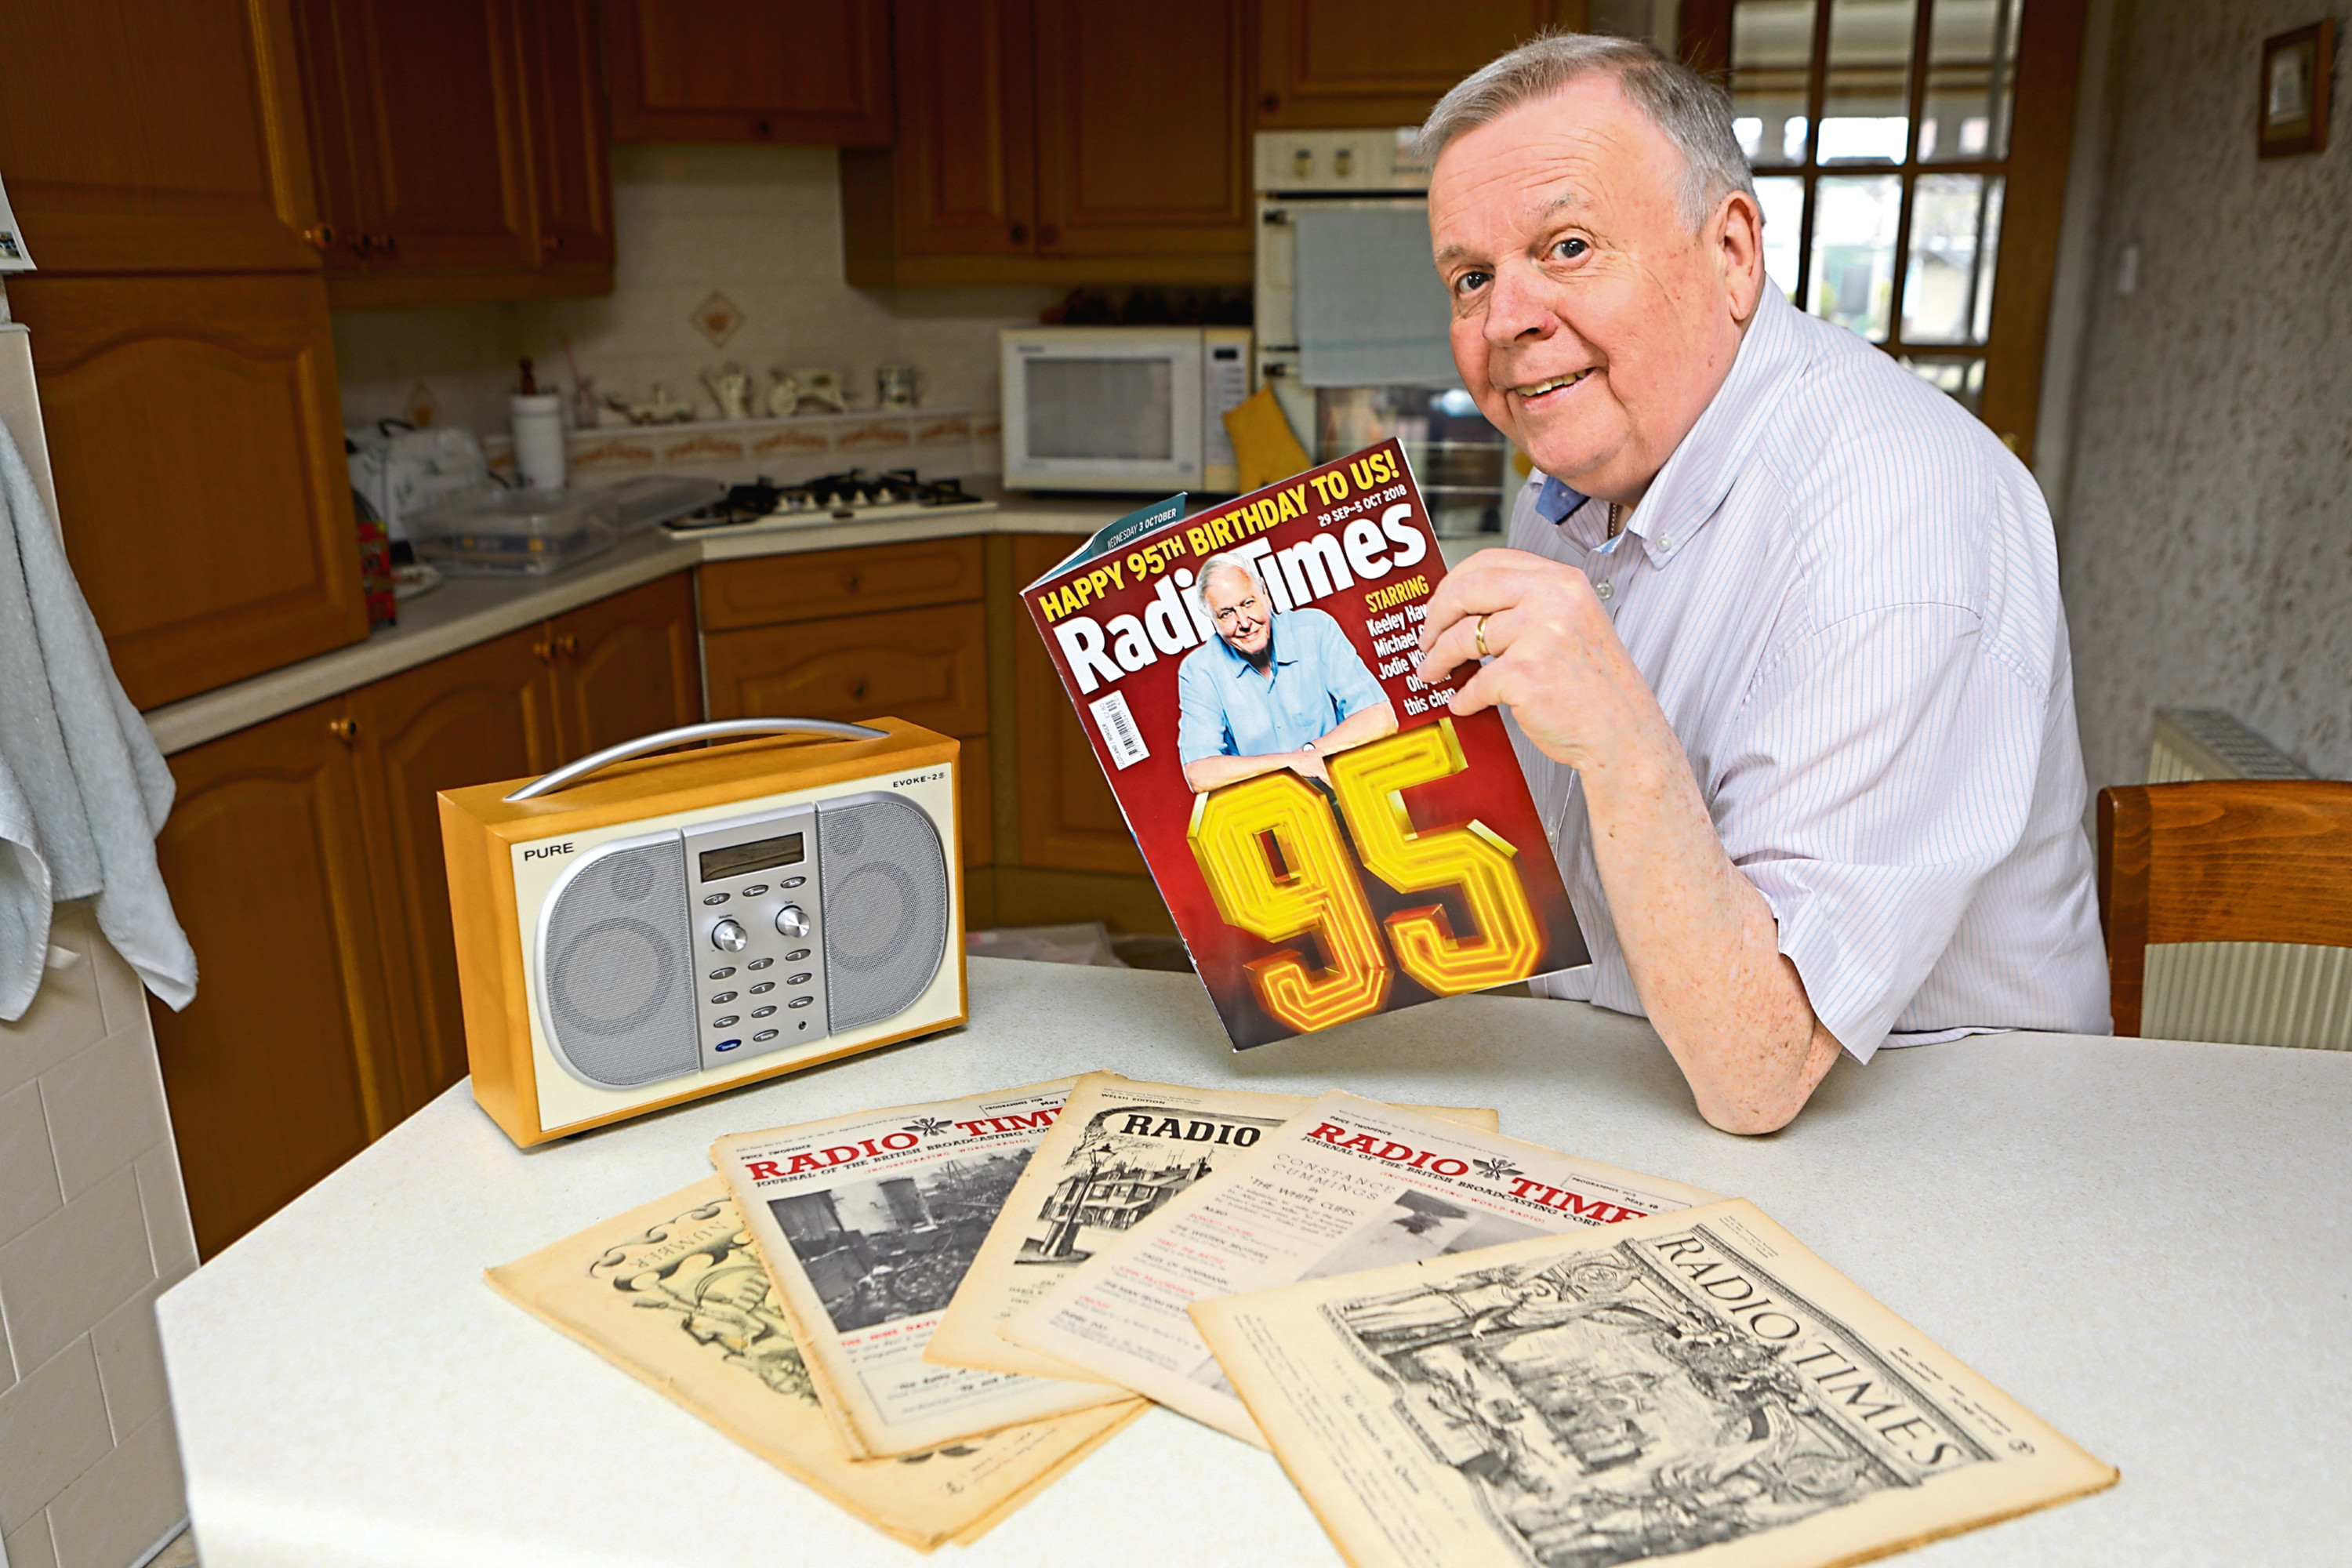 Tom Cairns with one of his many copies of the Radio Times, at home in Dundee.